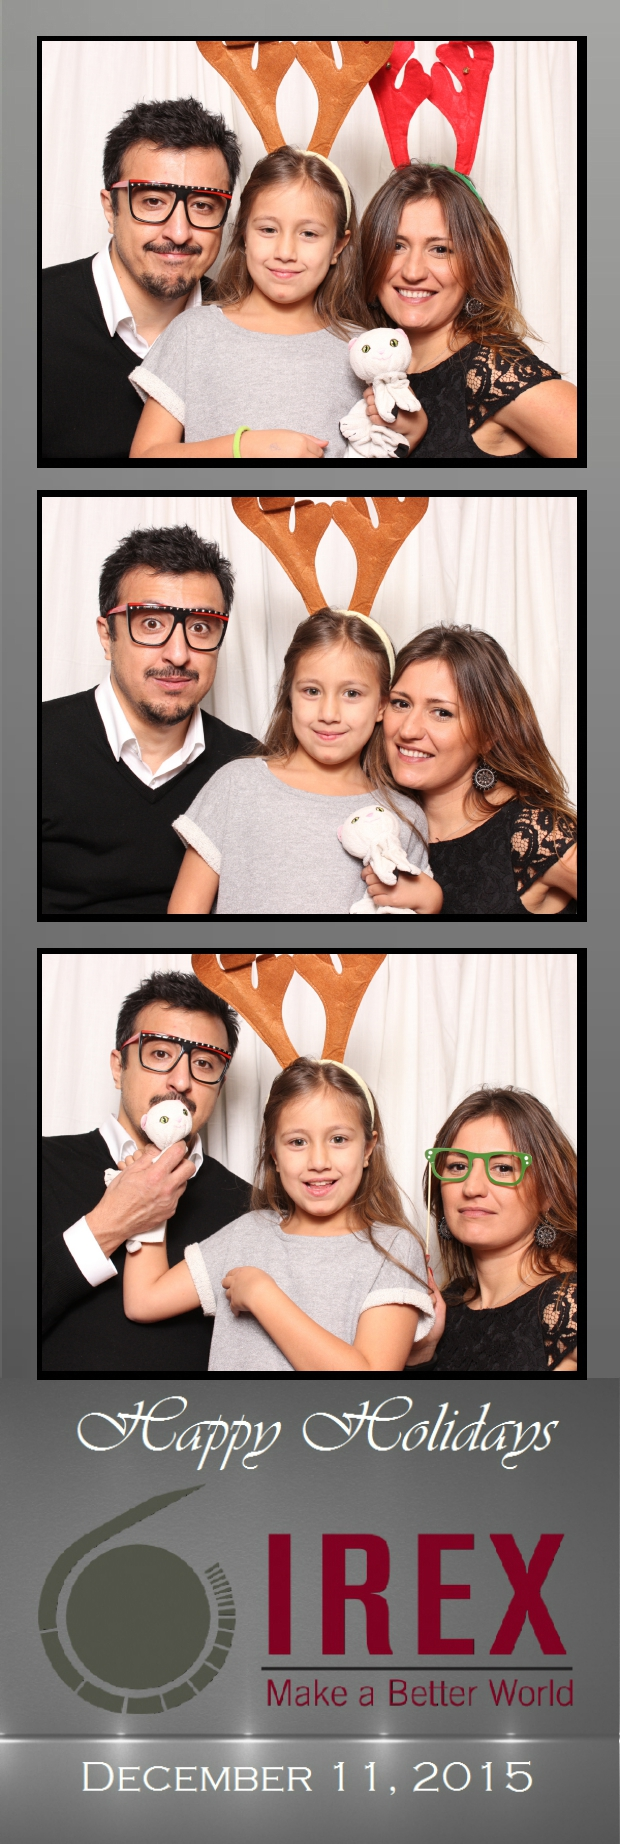 Guest House Events Photo Booth Strips IREX (34).jpg